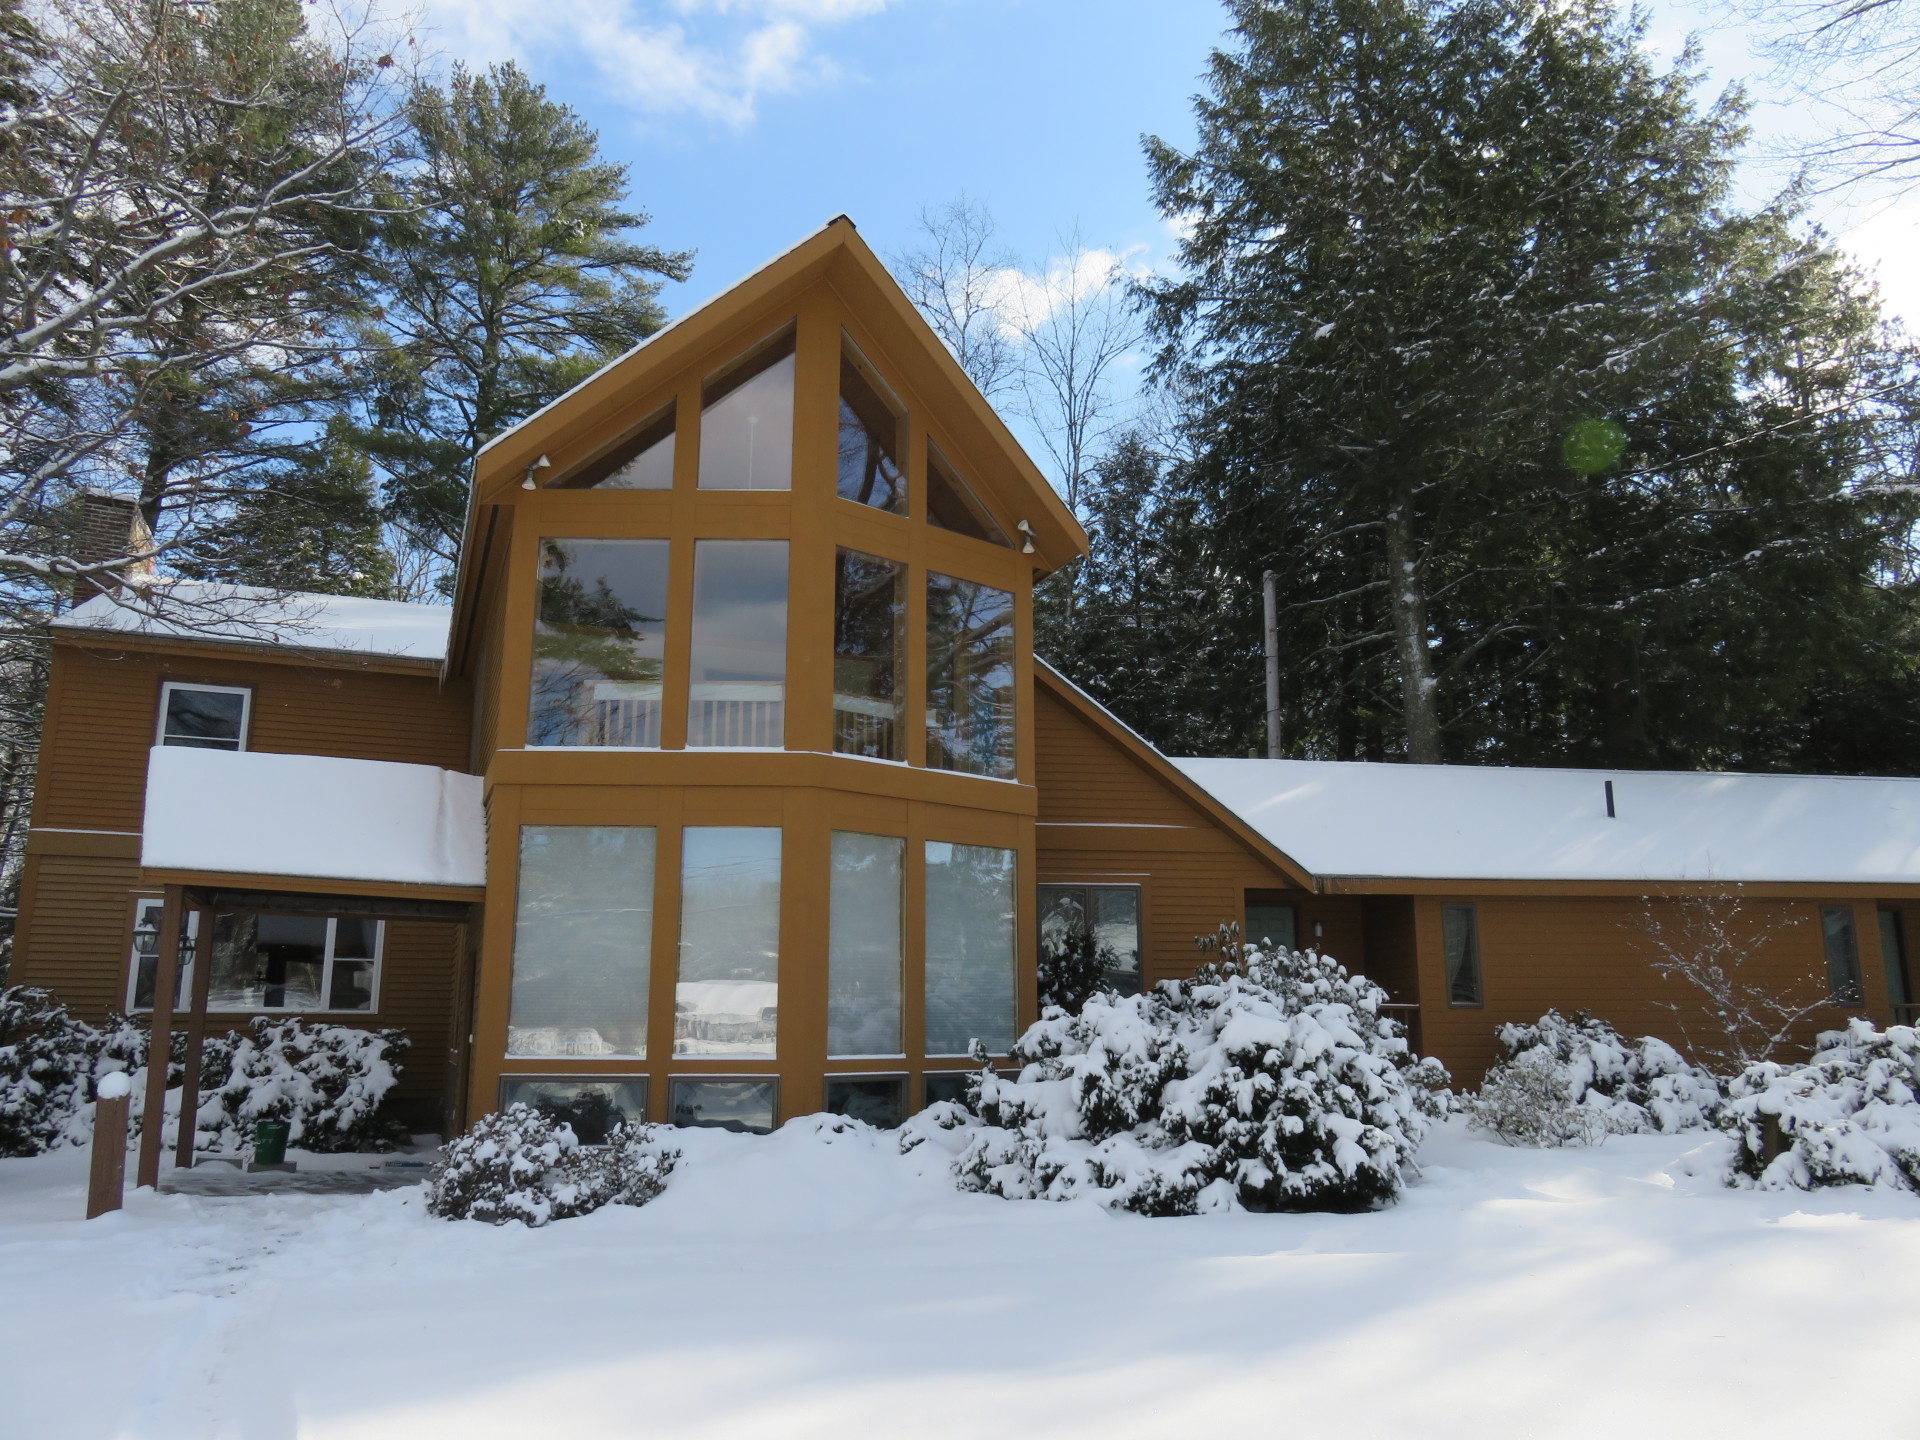 Wiscasset Woods Lodge in Wiscasset Maine covered in snow